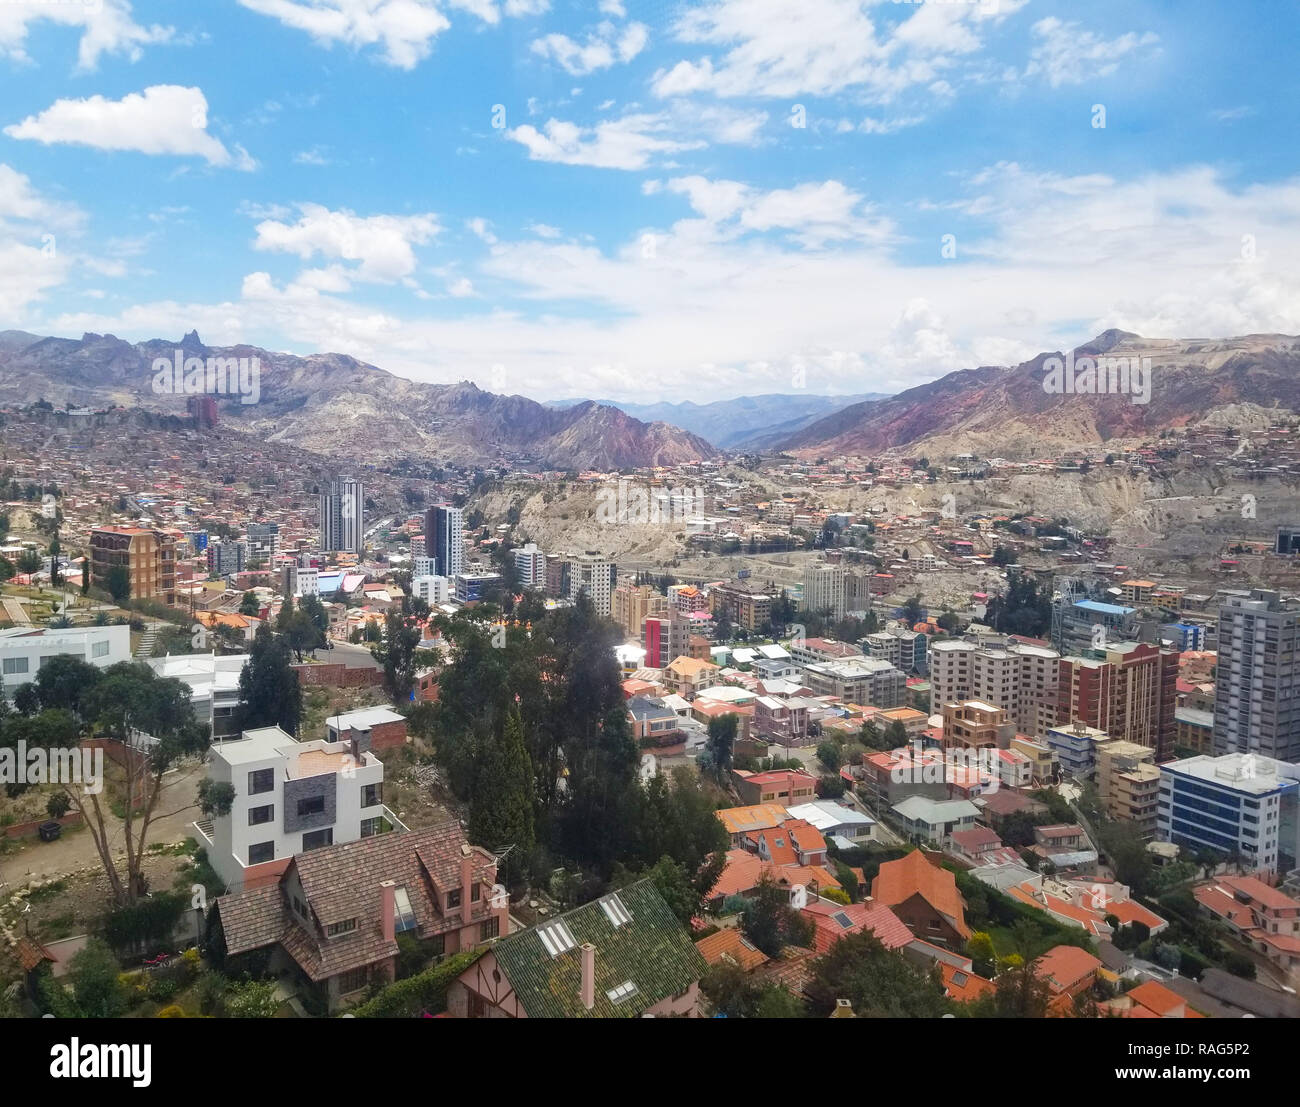 Aerial view of La Paz, Bolivia from a cable car. City center. South America Stock Photo